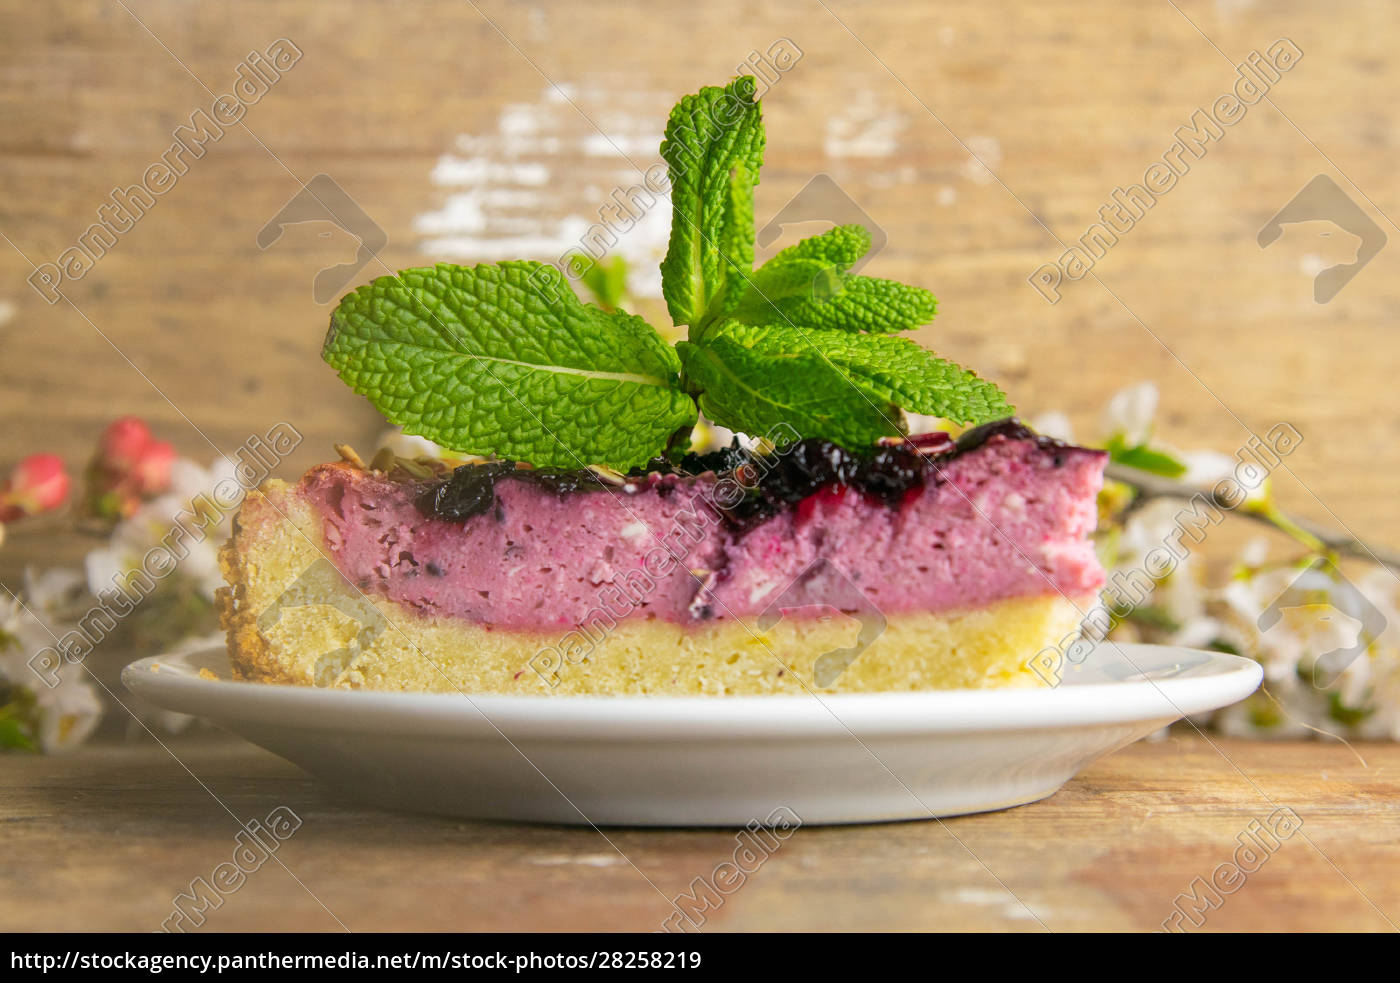 slices, of, blueberry, mousse, cake, with - 28258219